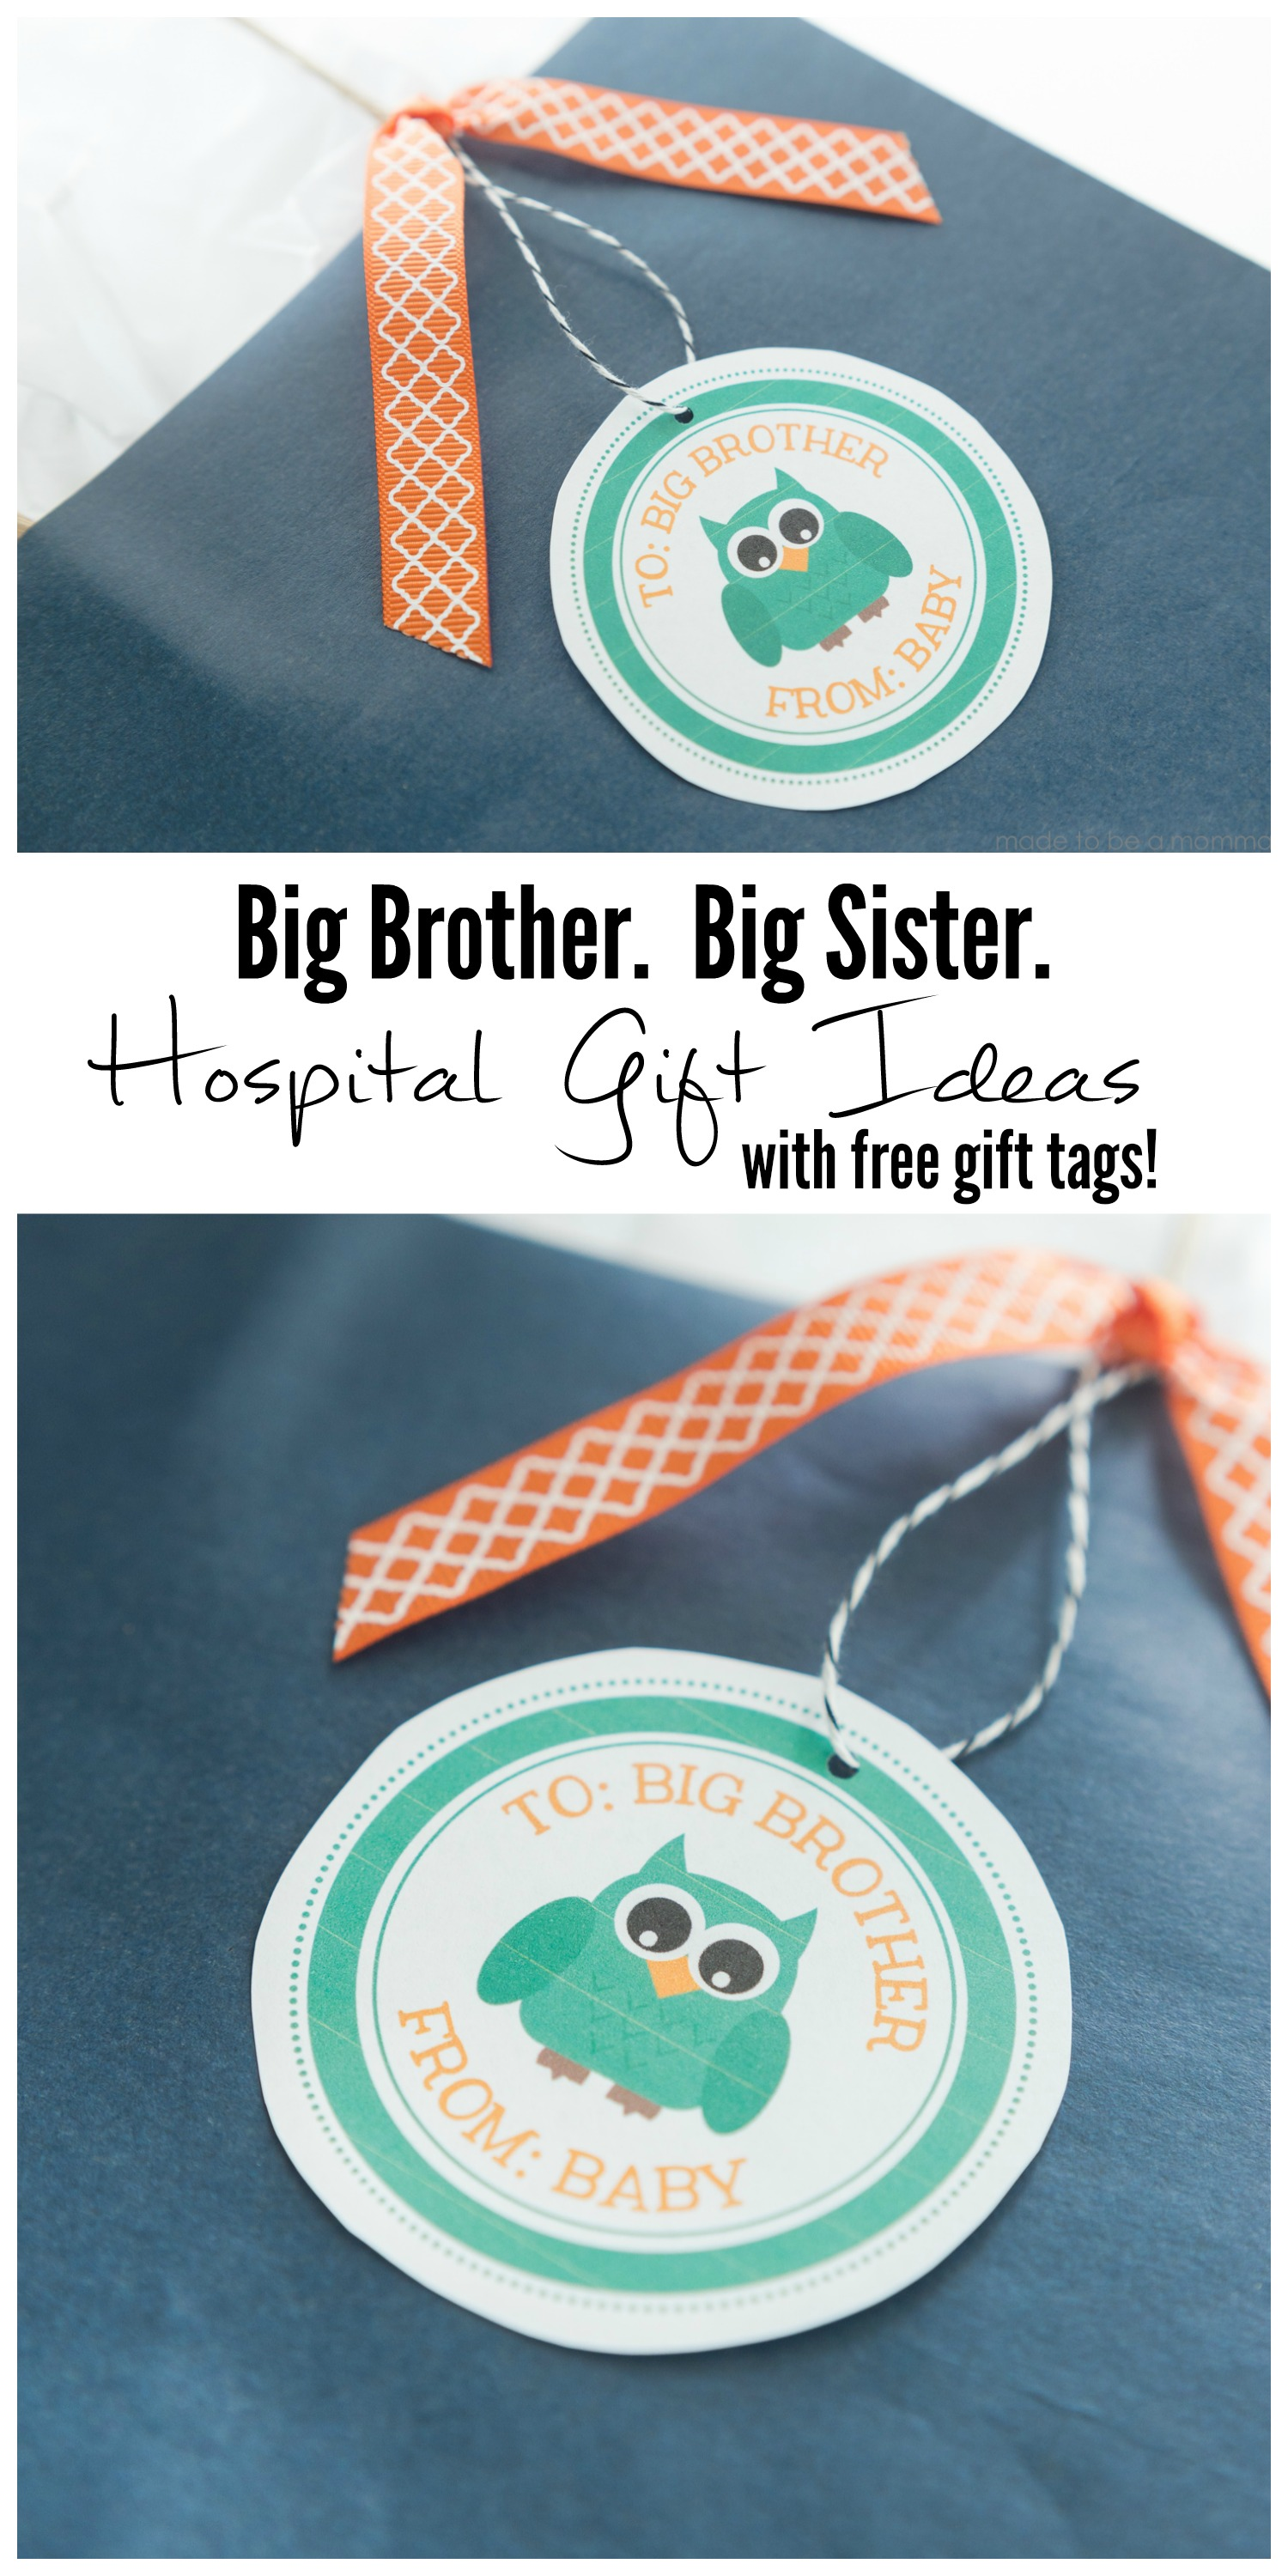 Big Sibling Hospital Gift Ideas with free gift tag!